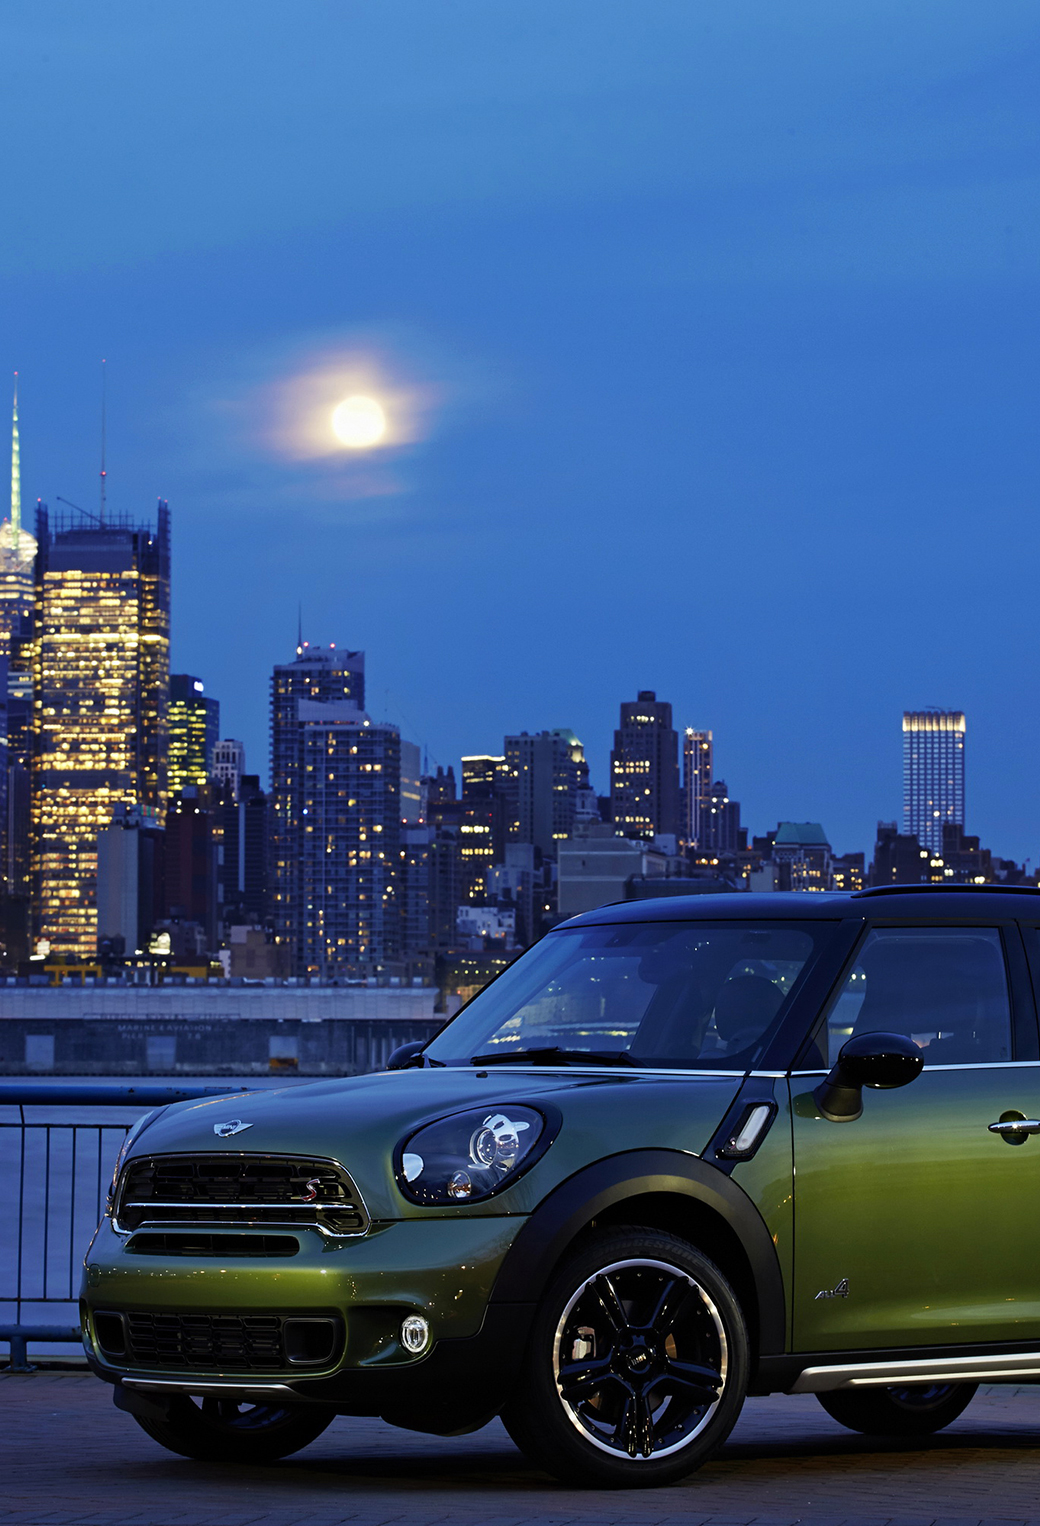 Mini Cooper Wallpaper For Iphone X 8 7 6 Free Download